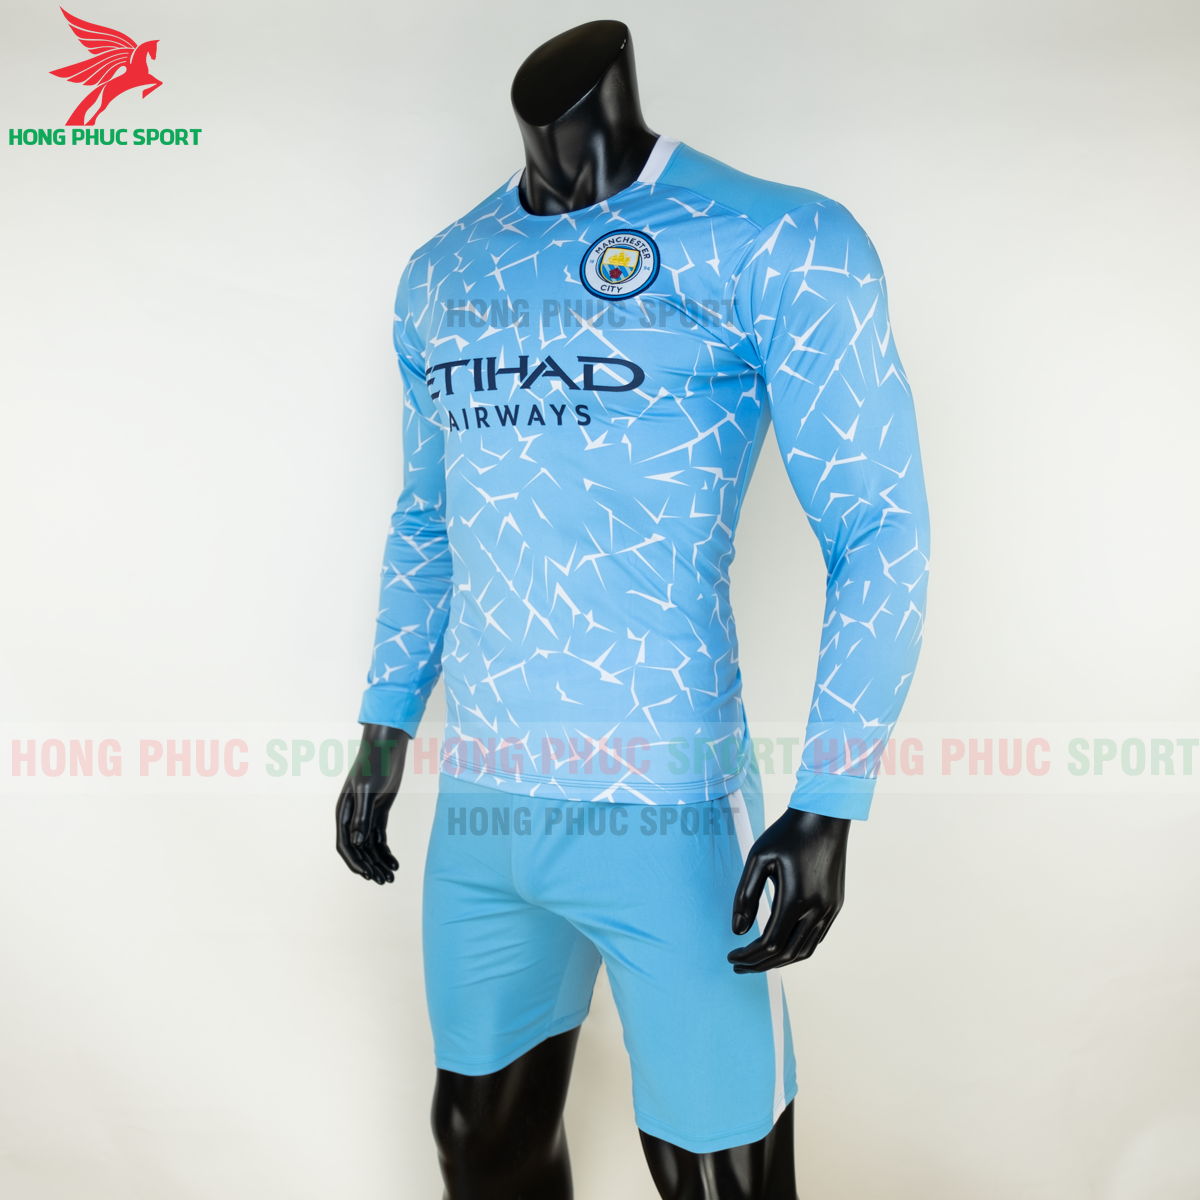 https://cdn.hongphucsport.com/unsafe/s4.shopbay.vn/files/285/ao-dai-tay-manchester-city-2020-san-nha-6-5f8fdbe6c186e.png